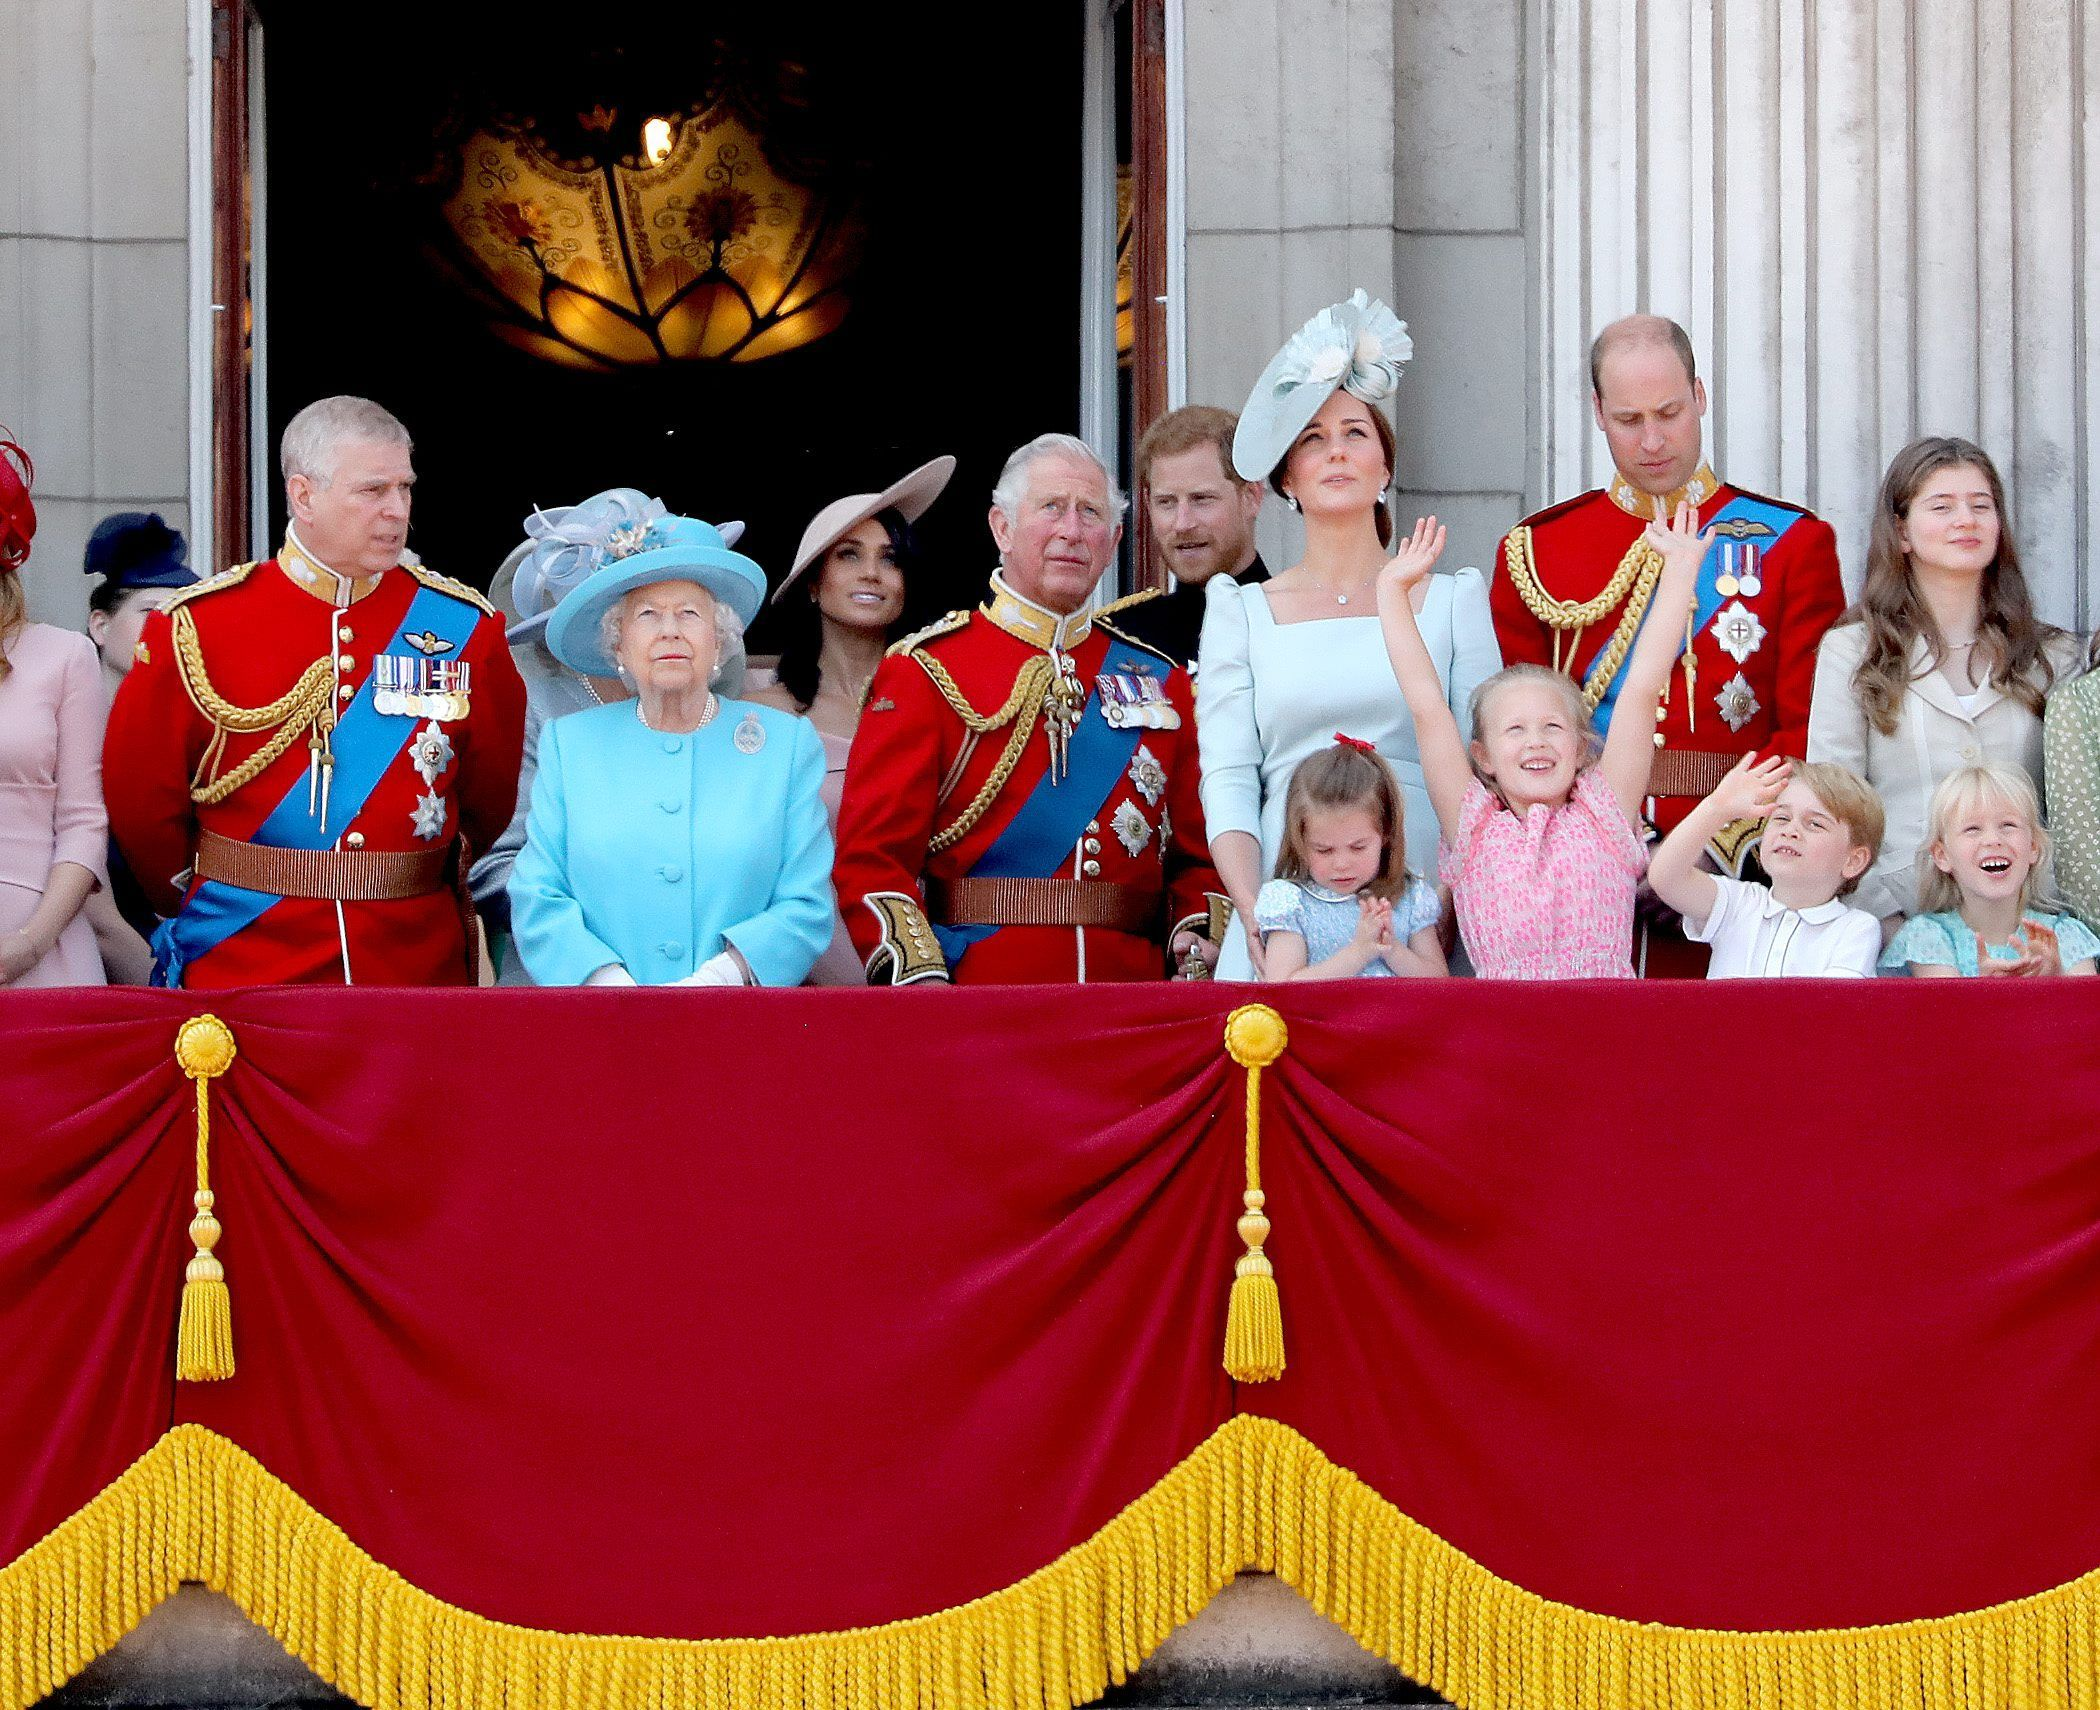 The Royal Family Quiz: Do You Know The Royal Family's Official Titles? - Fame10